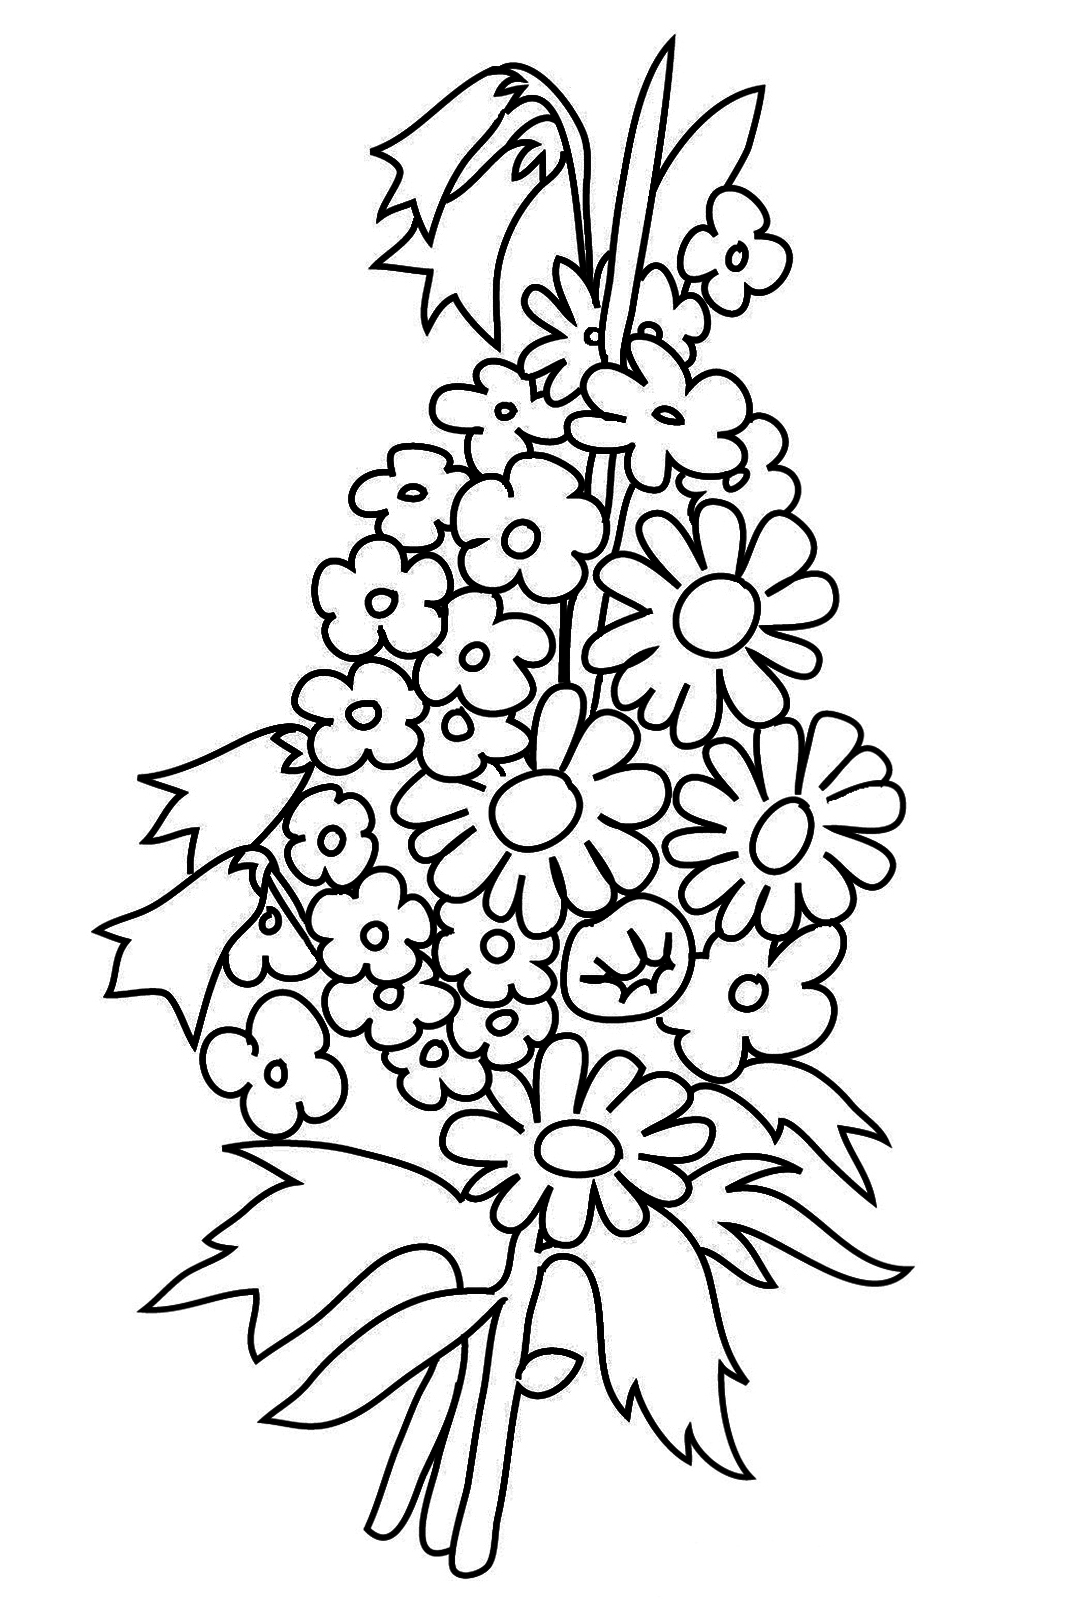 coloring picture of flower rose flower for beautiful lady coloring page download flower picture of coloring